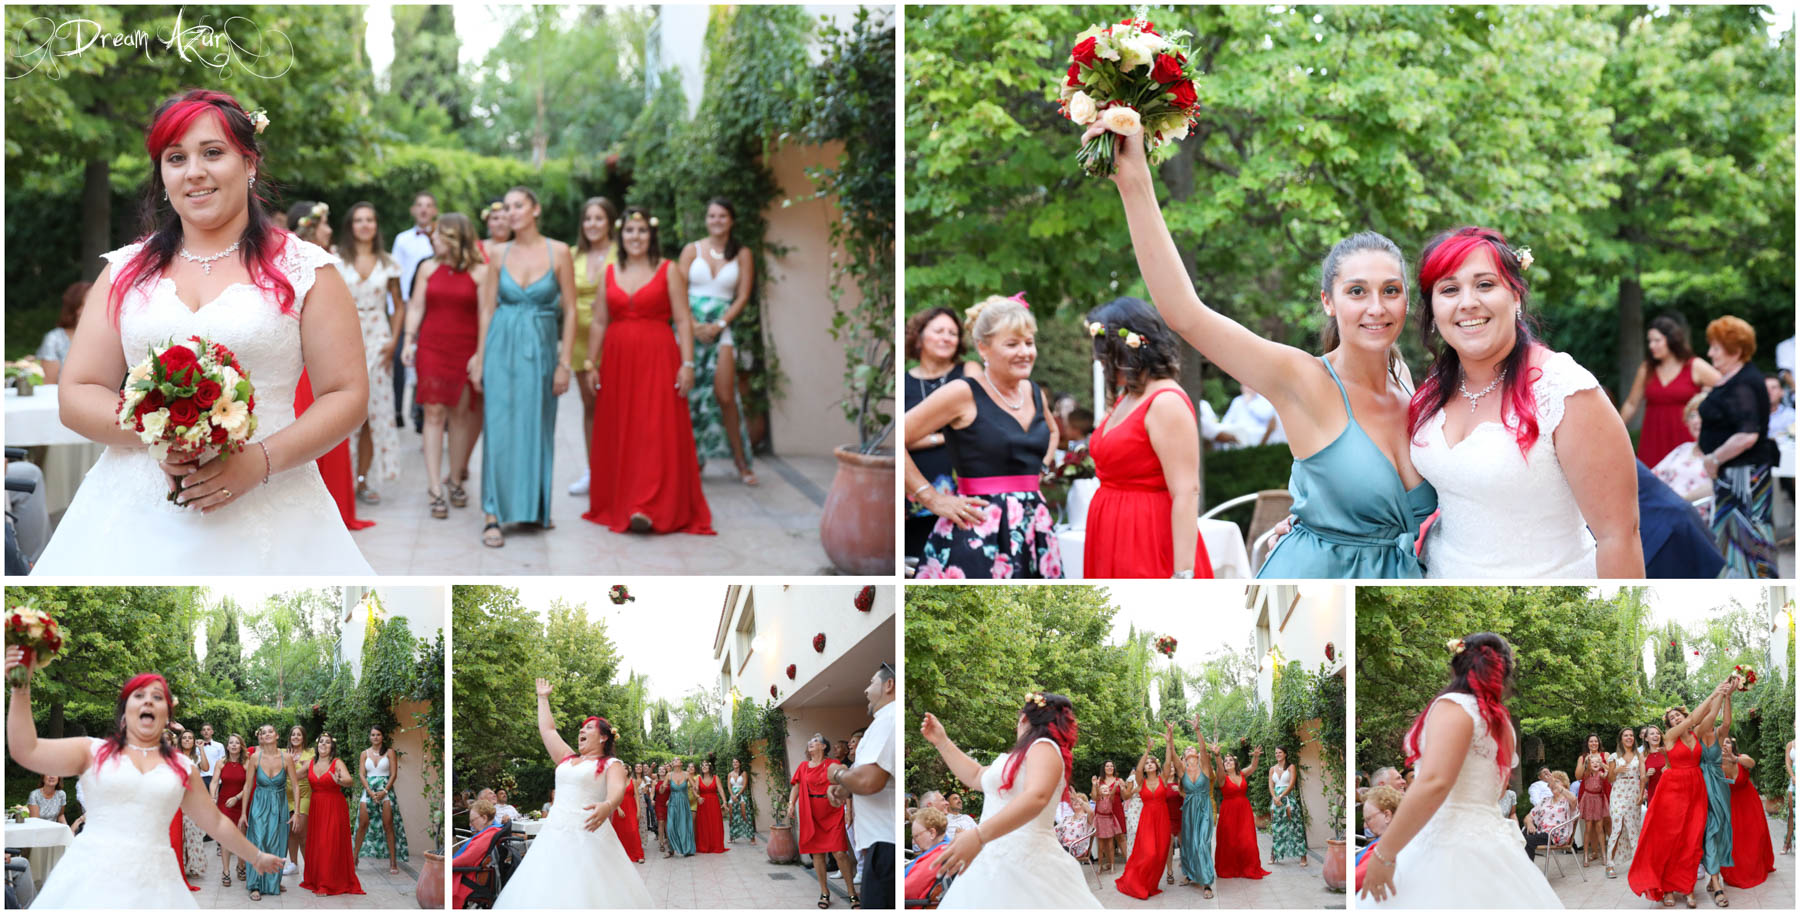 190824COMPO-Mariage-Cindy-et-Anthony-73